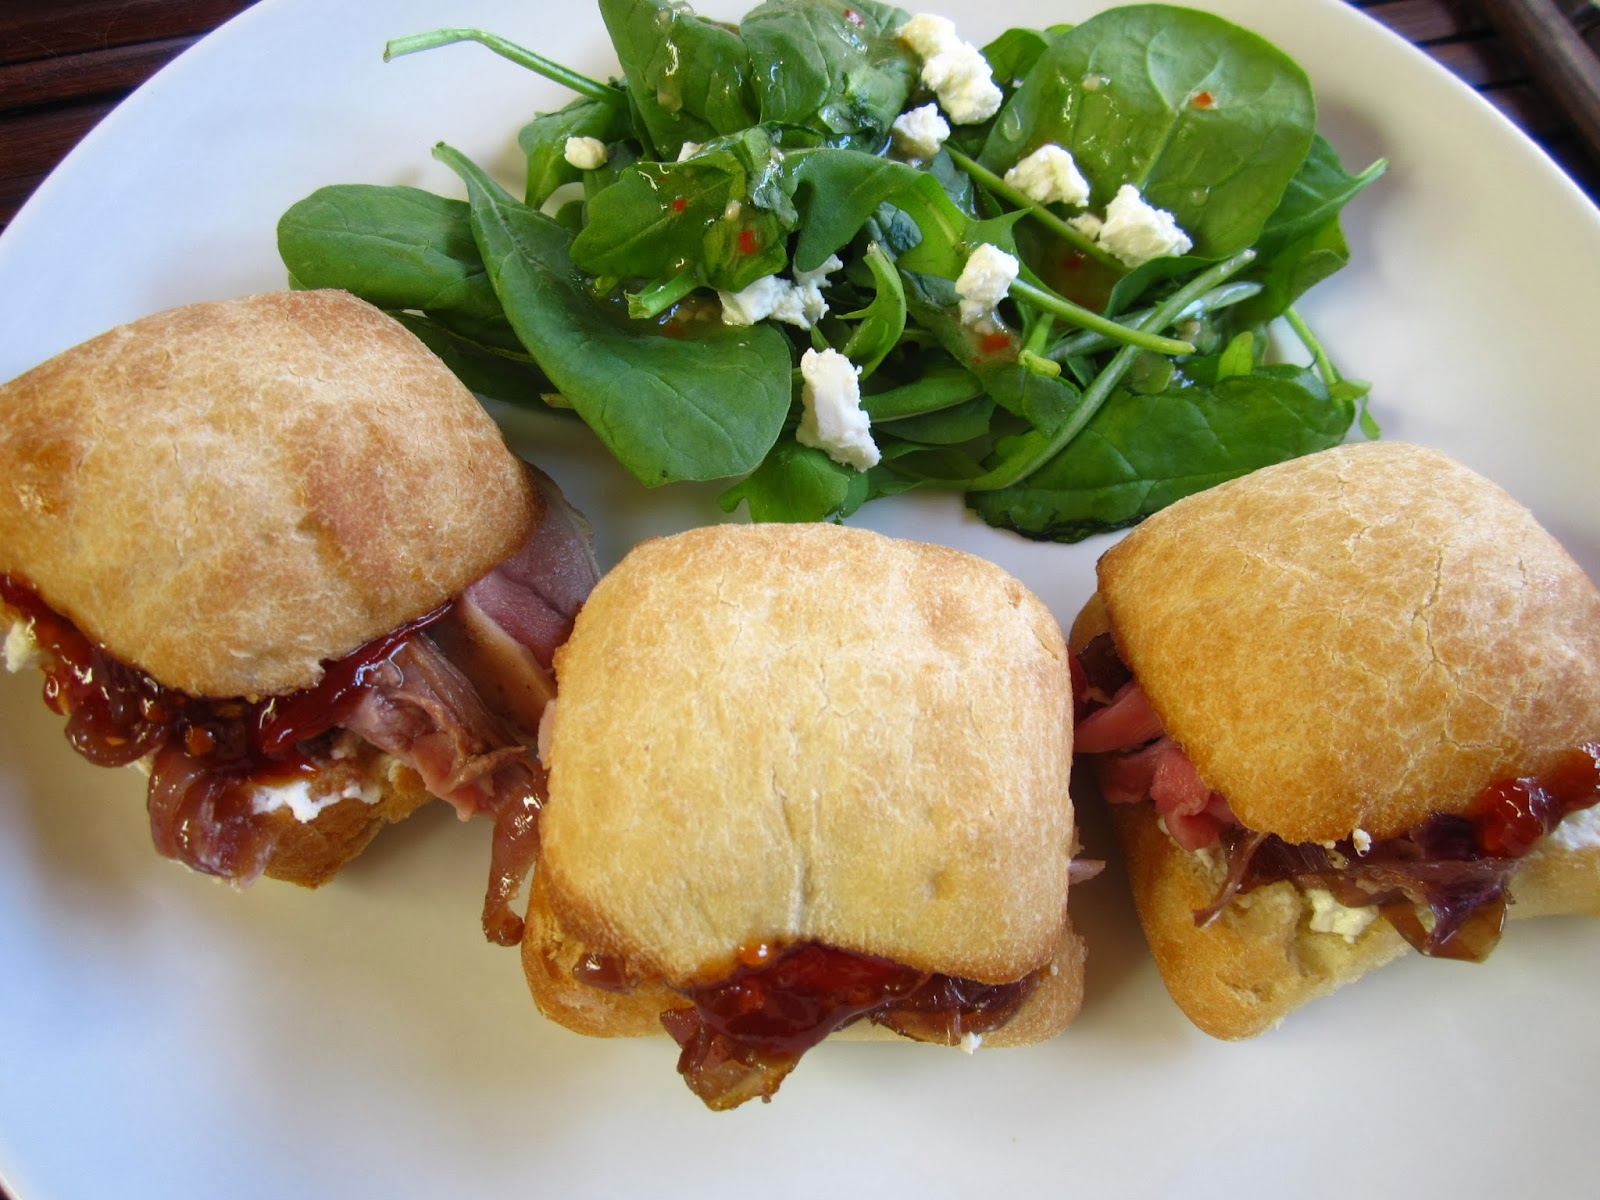 ... Lamb Sandwiches with Goat Cheese, Caramelized Onions and Tomato Jam